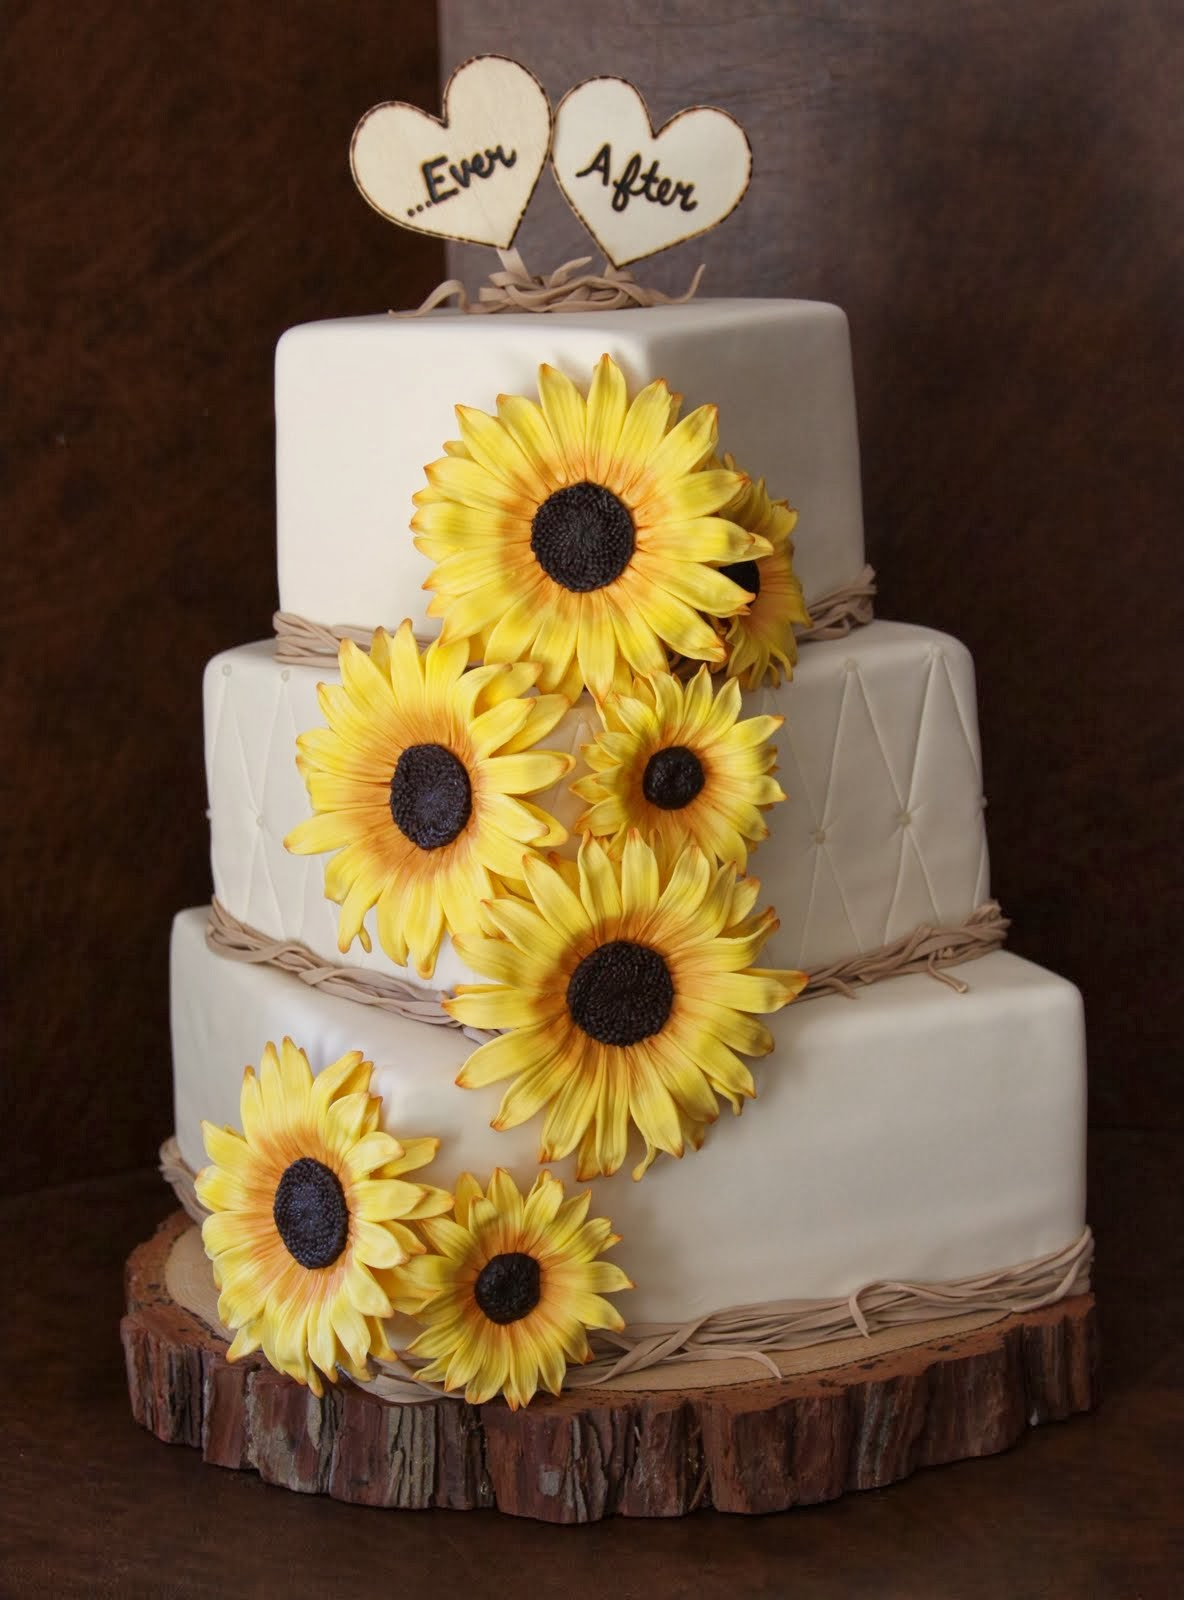 Memorable Wedding Serve a Sunflower Wedding Cake To